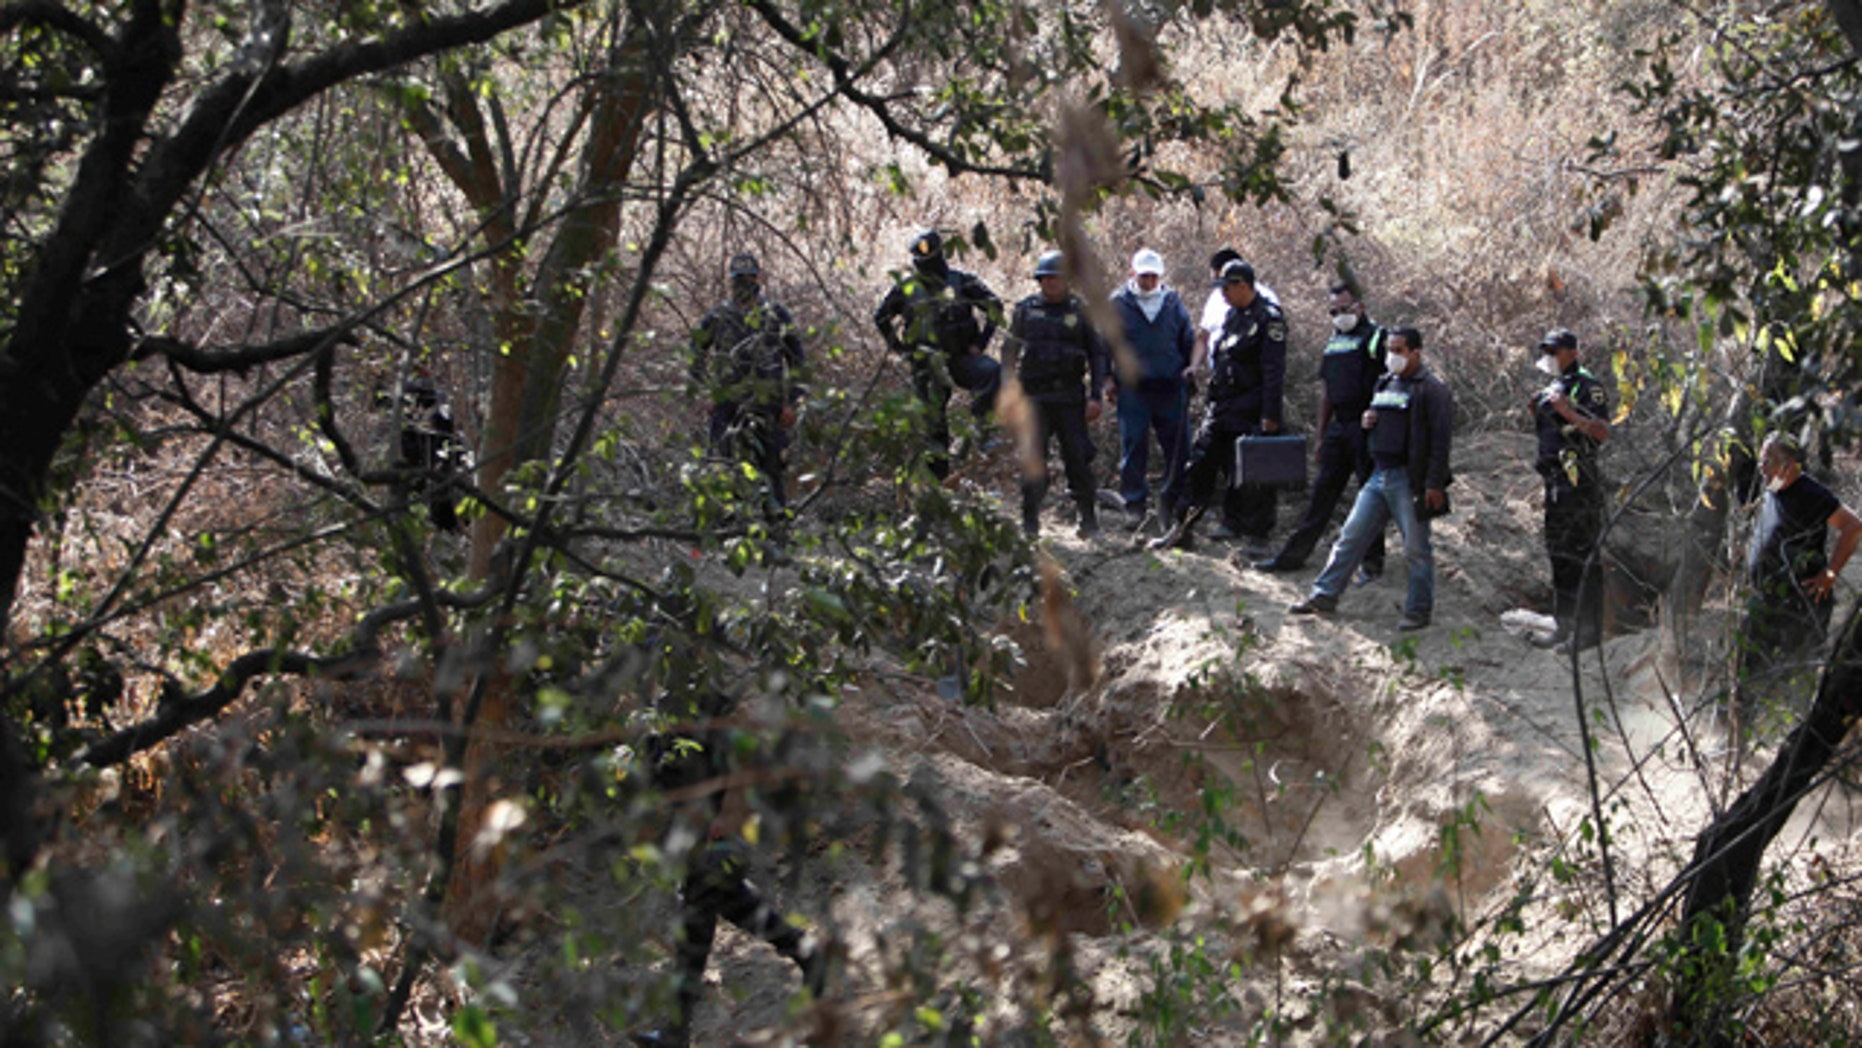 Feb. 27: State police guard the site where at least five bodies were found in a clandestine grave in Santa Mara Tlalmanalco on the outskirts of Mexico City.